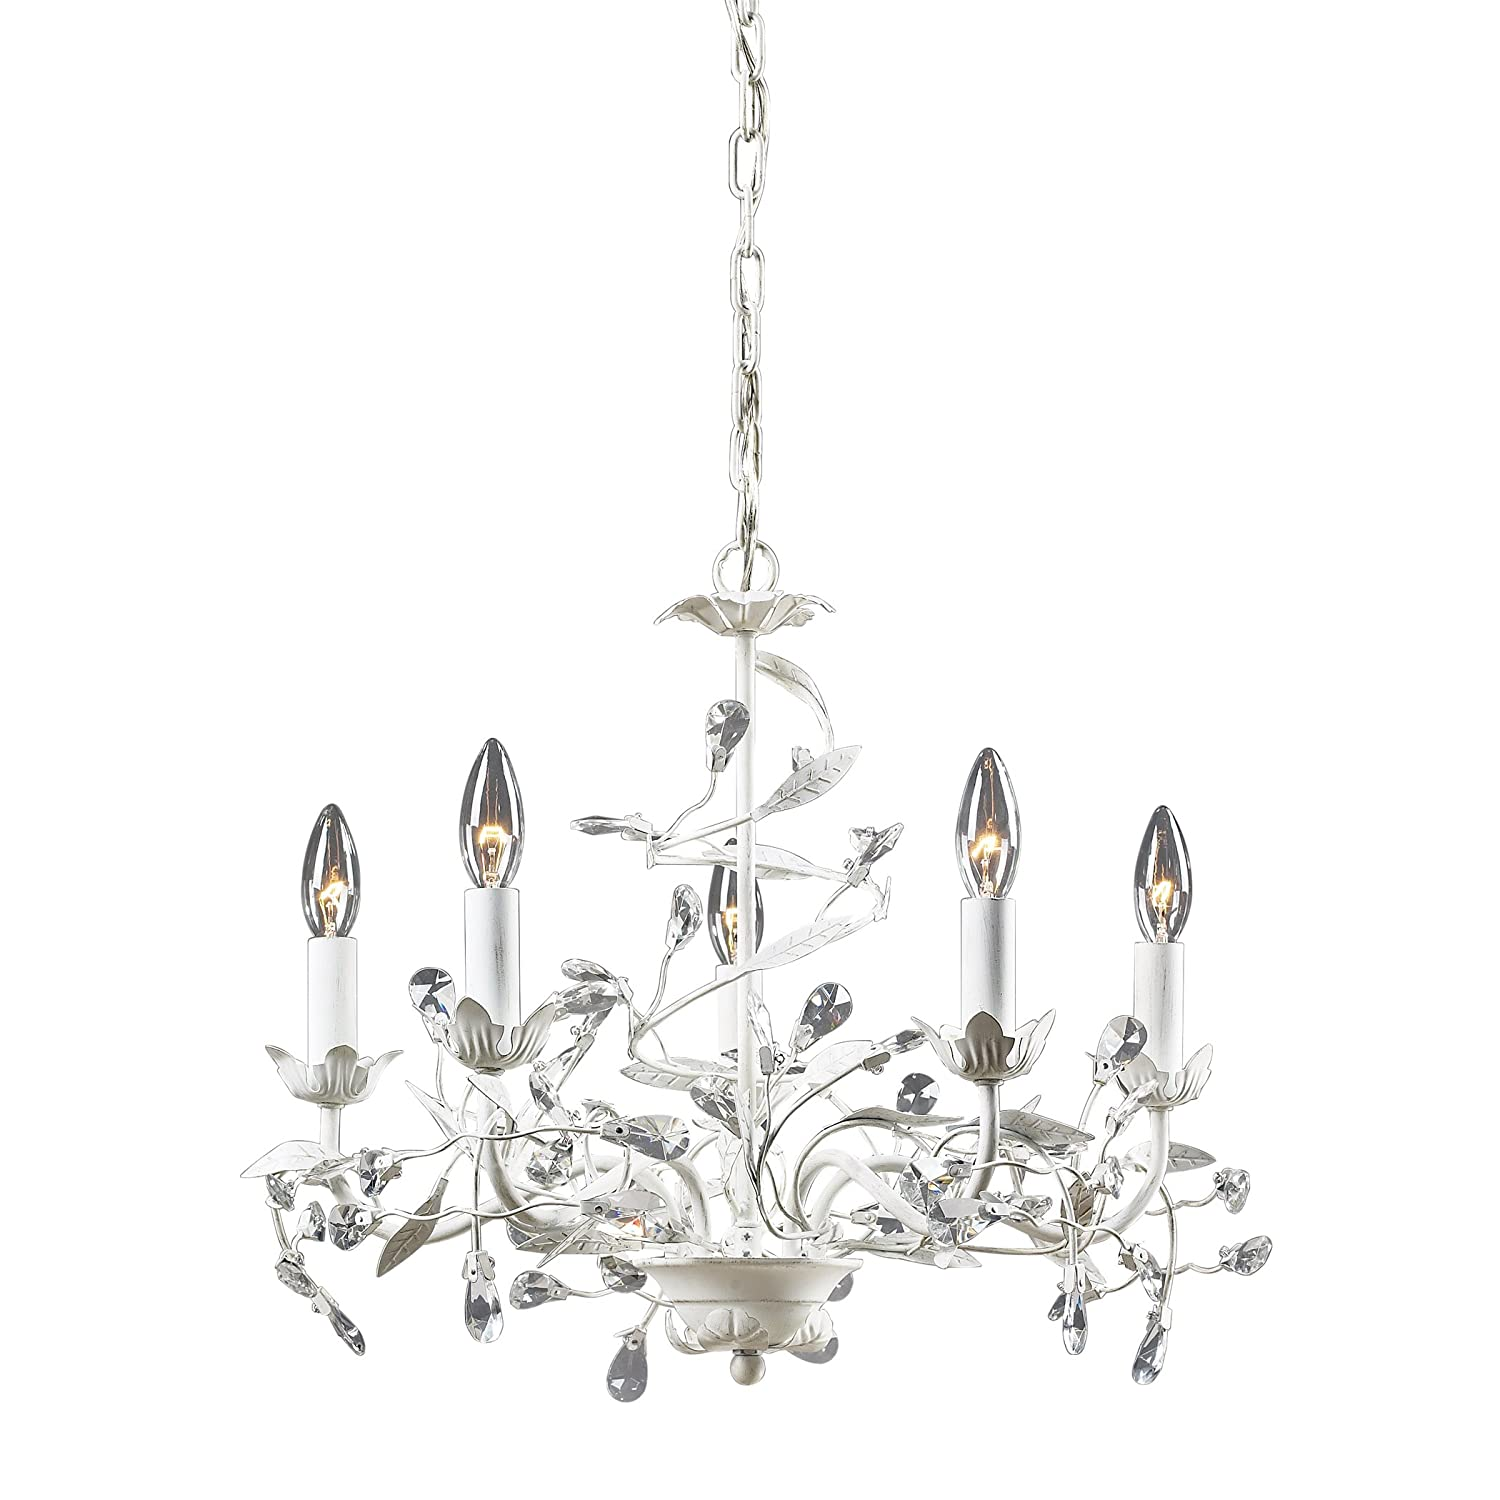 Elk lighting 181135 circeo five light chandelier antique white elk lighting 181135 circeo five light chandelier antique white crystal chandelier lighting amazon aloadofball Images